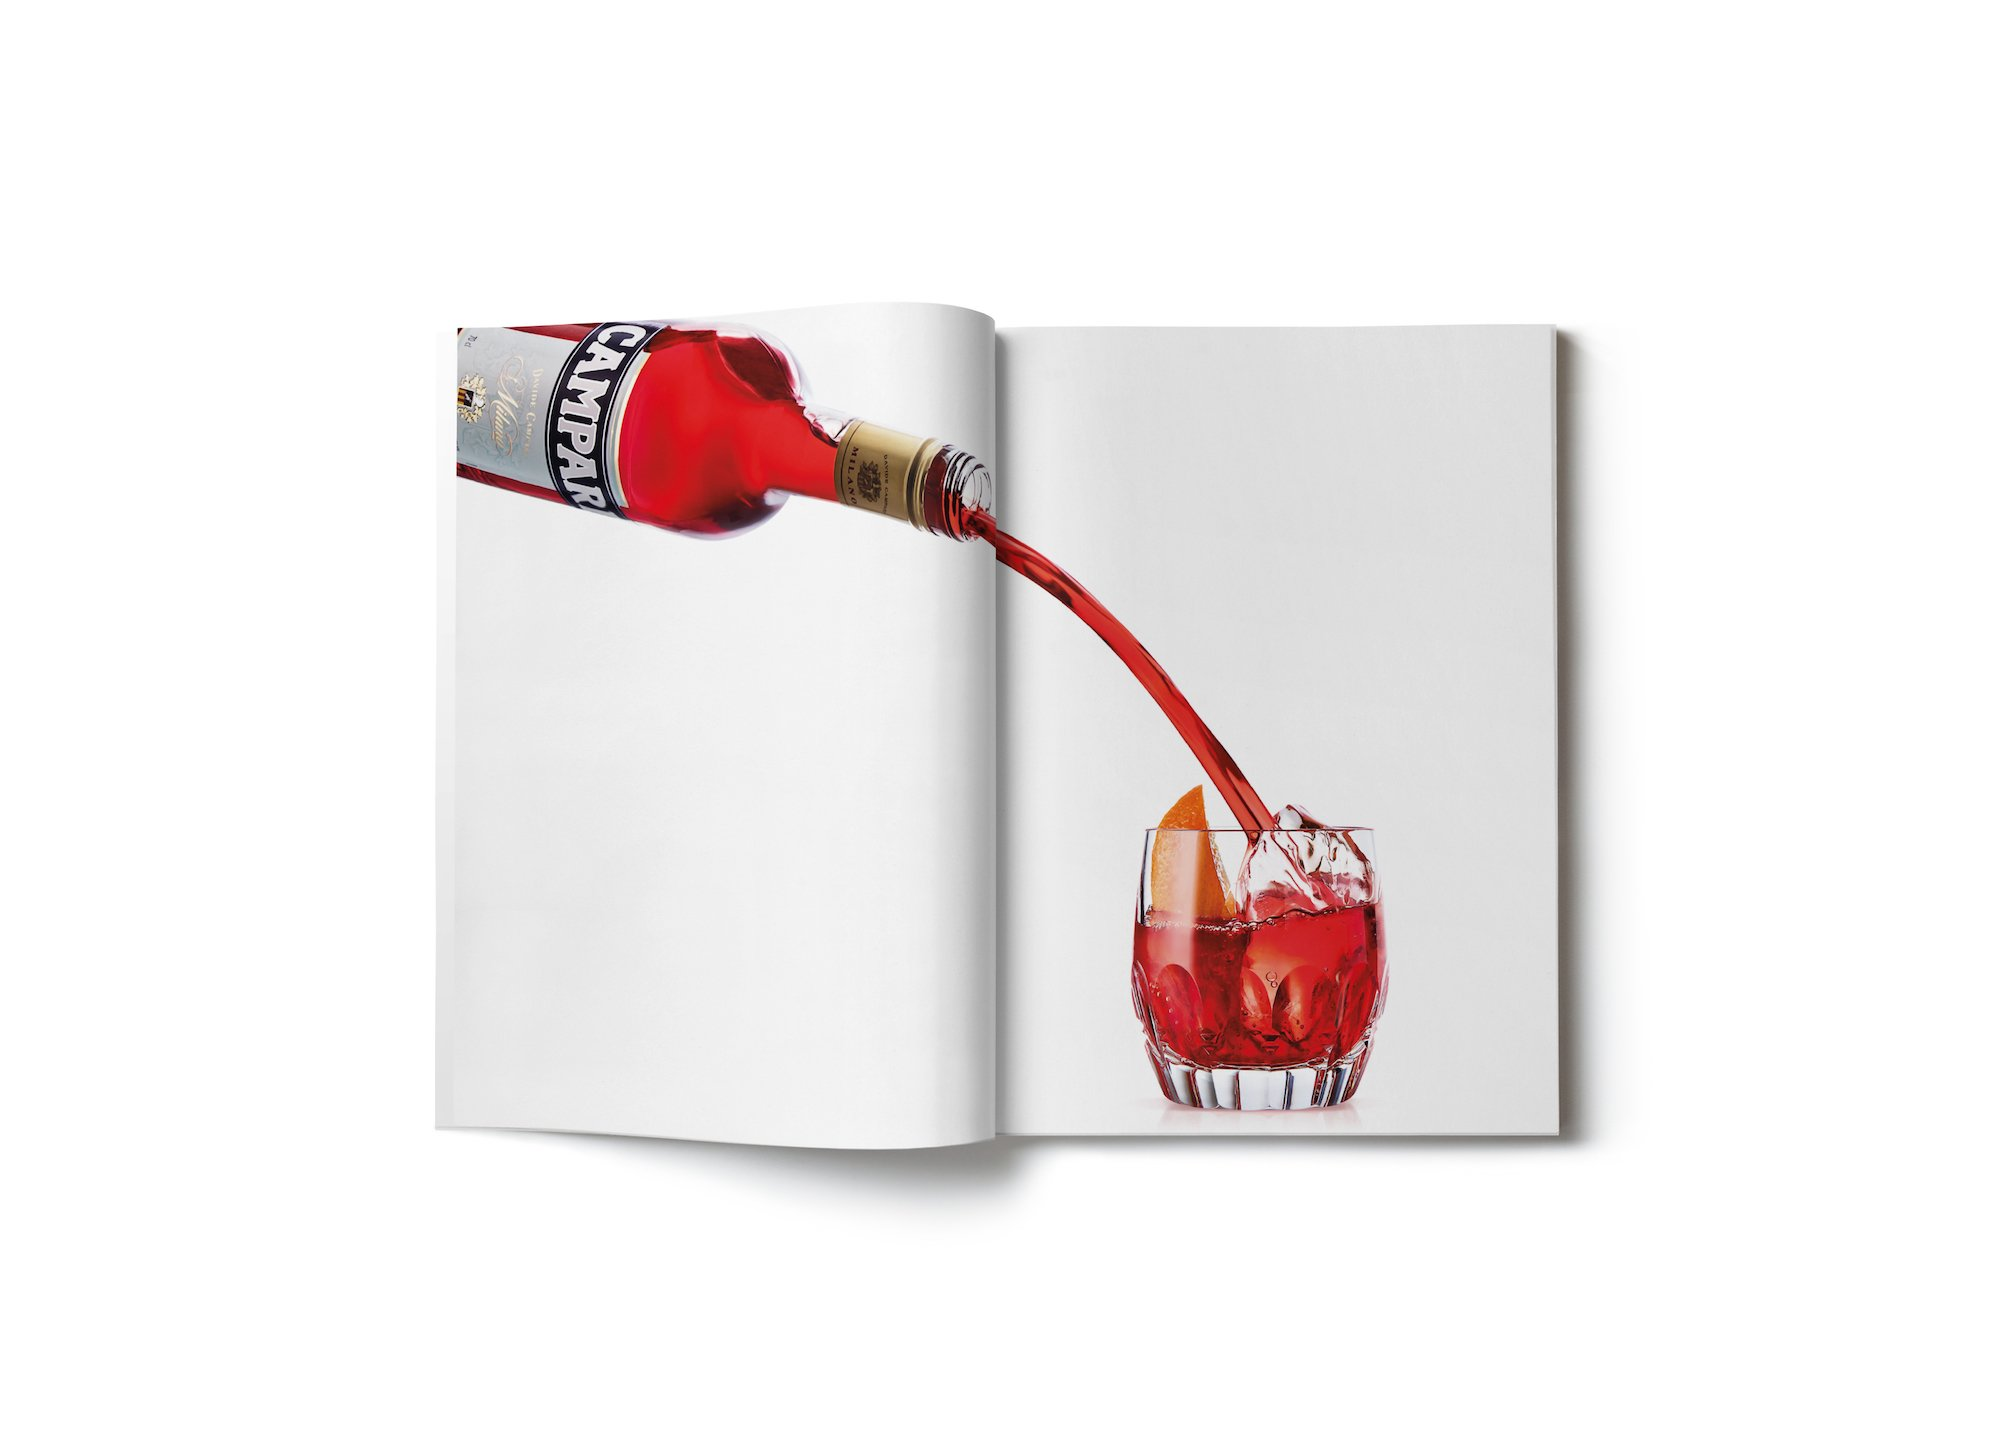 'La Vita Campari' by Spinach for Campari © Spinach